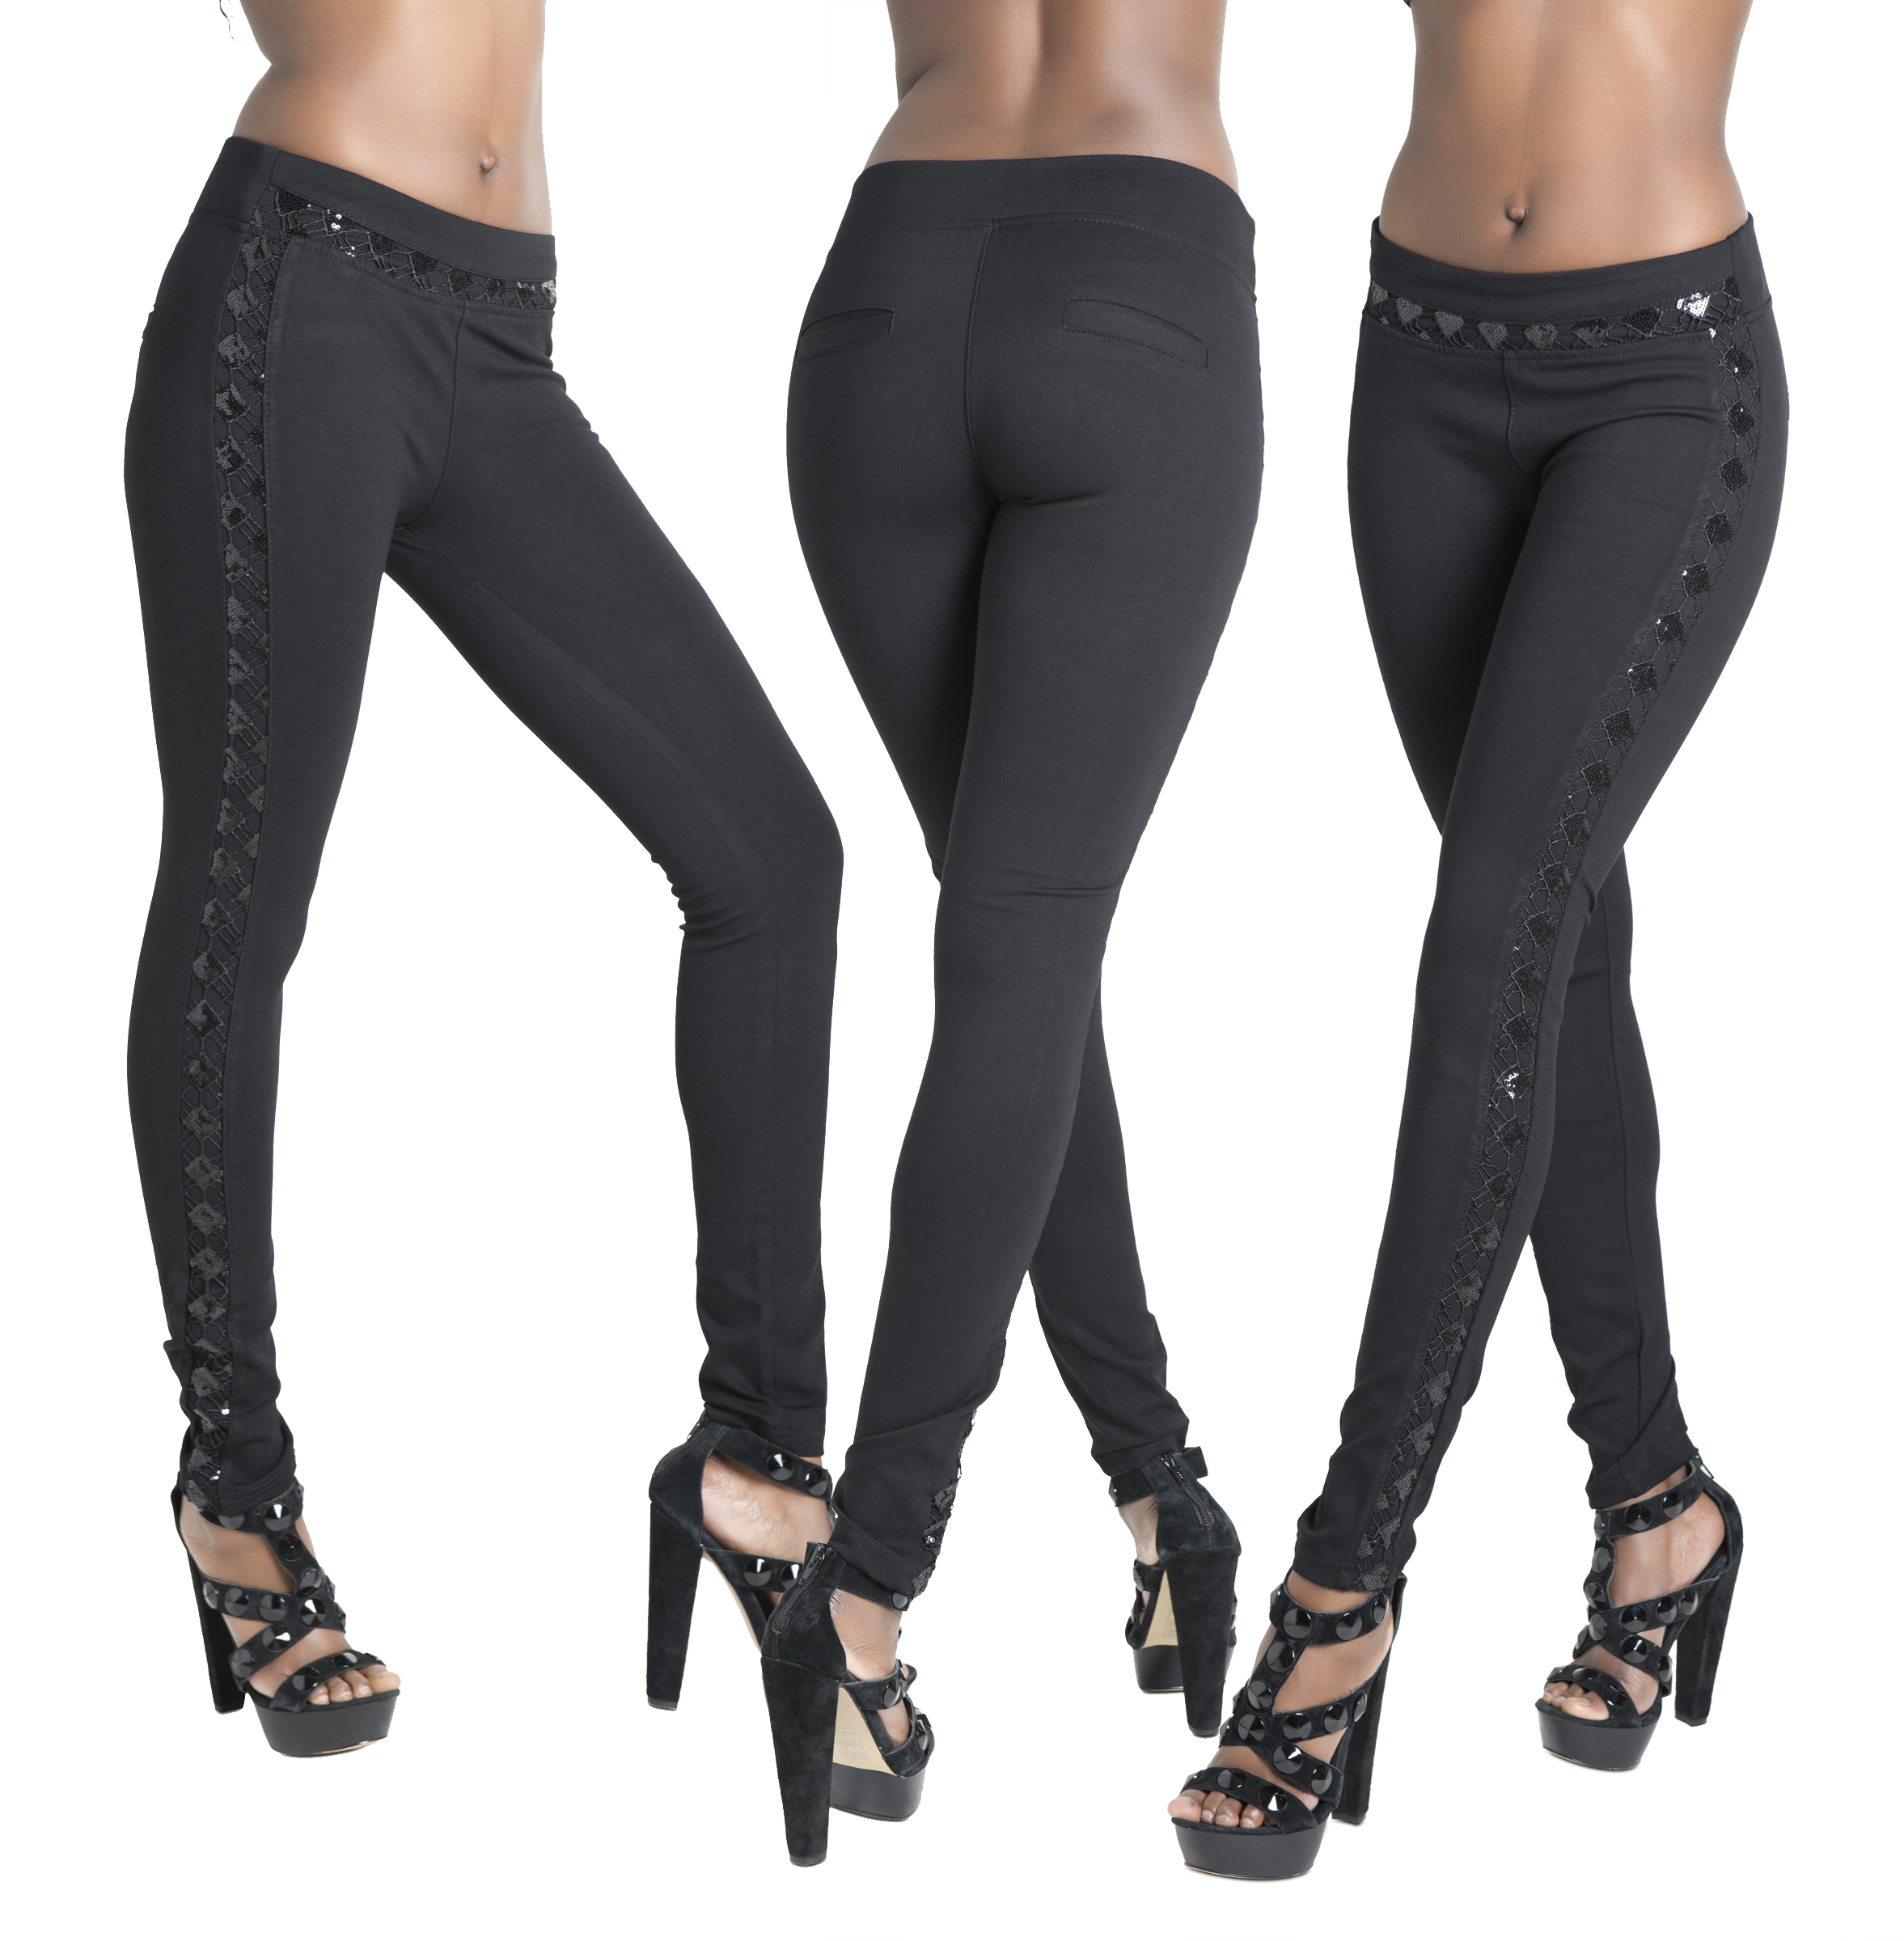 Womens Faux Leather Leggings Sexy Tight Fit High Waisted Pants - Pop Fashion See Details Product - High Waist Leather Skinny Leggings Pants Tights Full Treggings (L, Black).